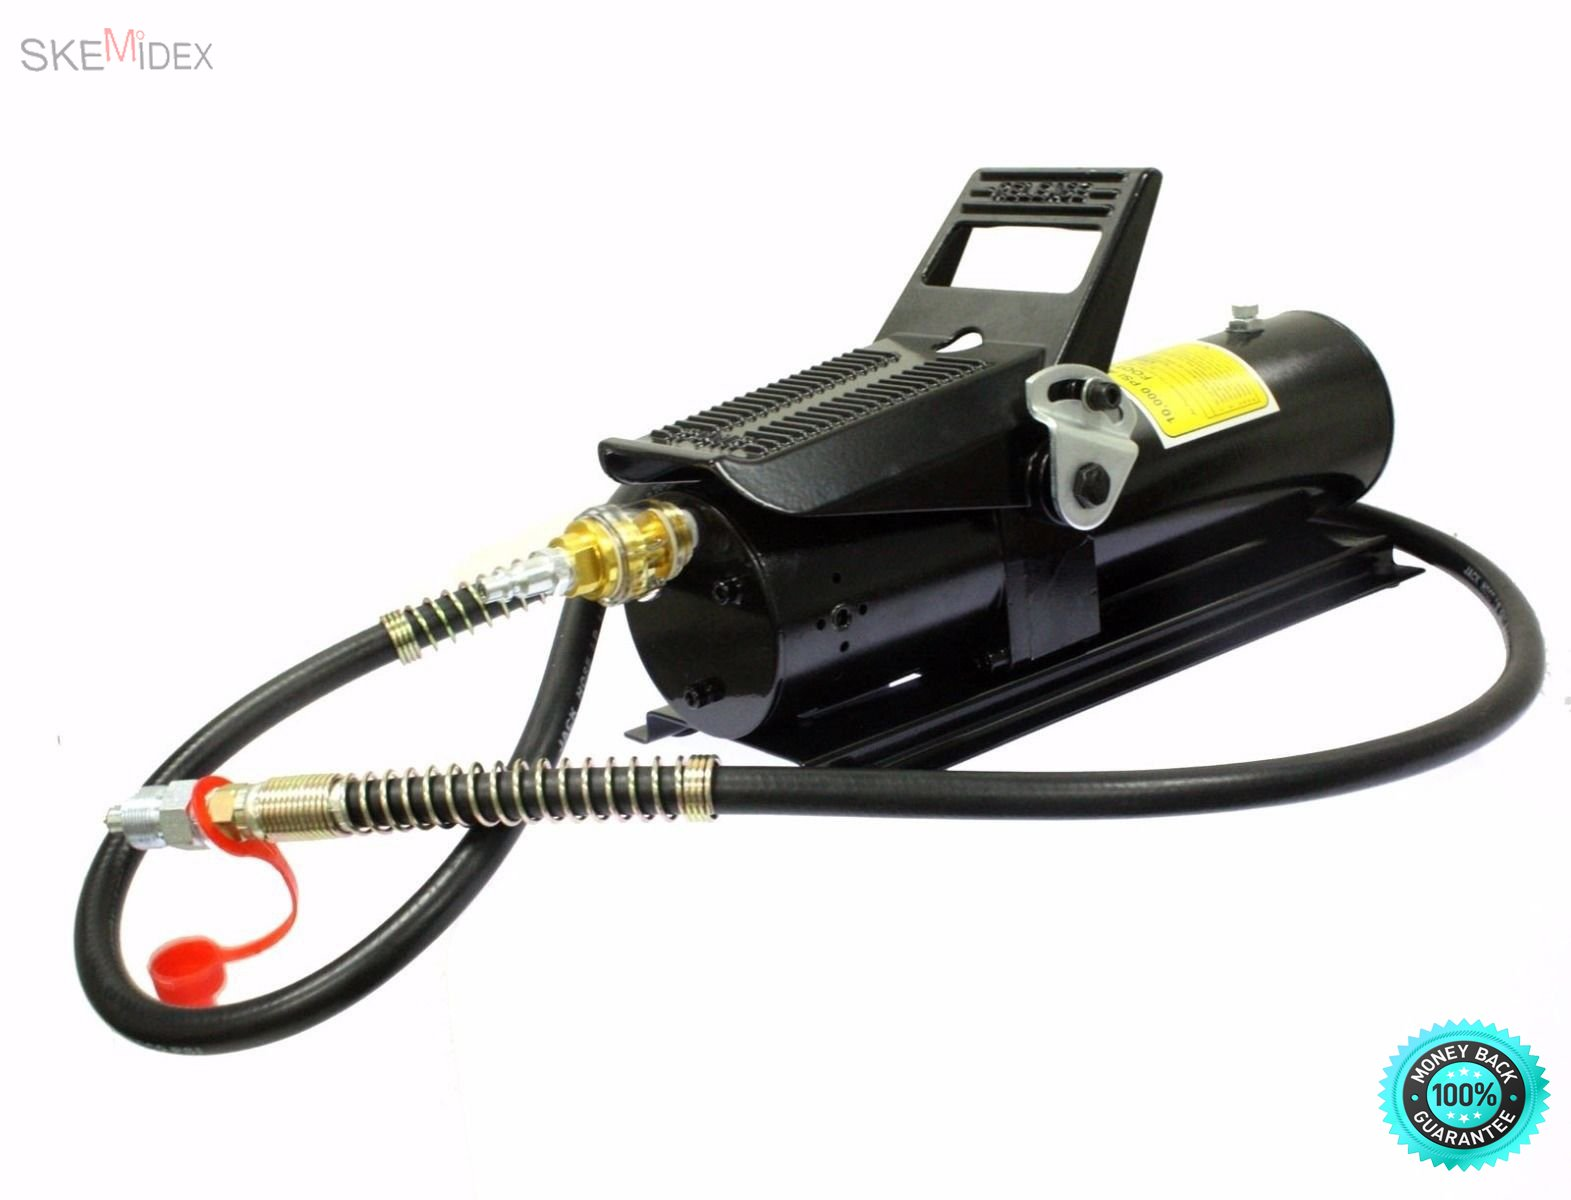 SKEMiDEX--- 10 TON 10,000 PSI Porta Power Foot Pump Control Lift W/ 6ft Hose Durable rugged construction parts built for long life and easy operation Swivel coupling simplifies hydraulic connect